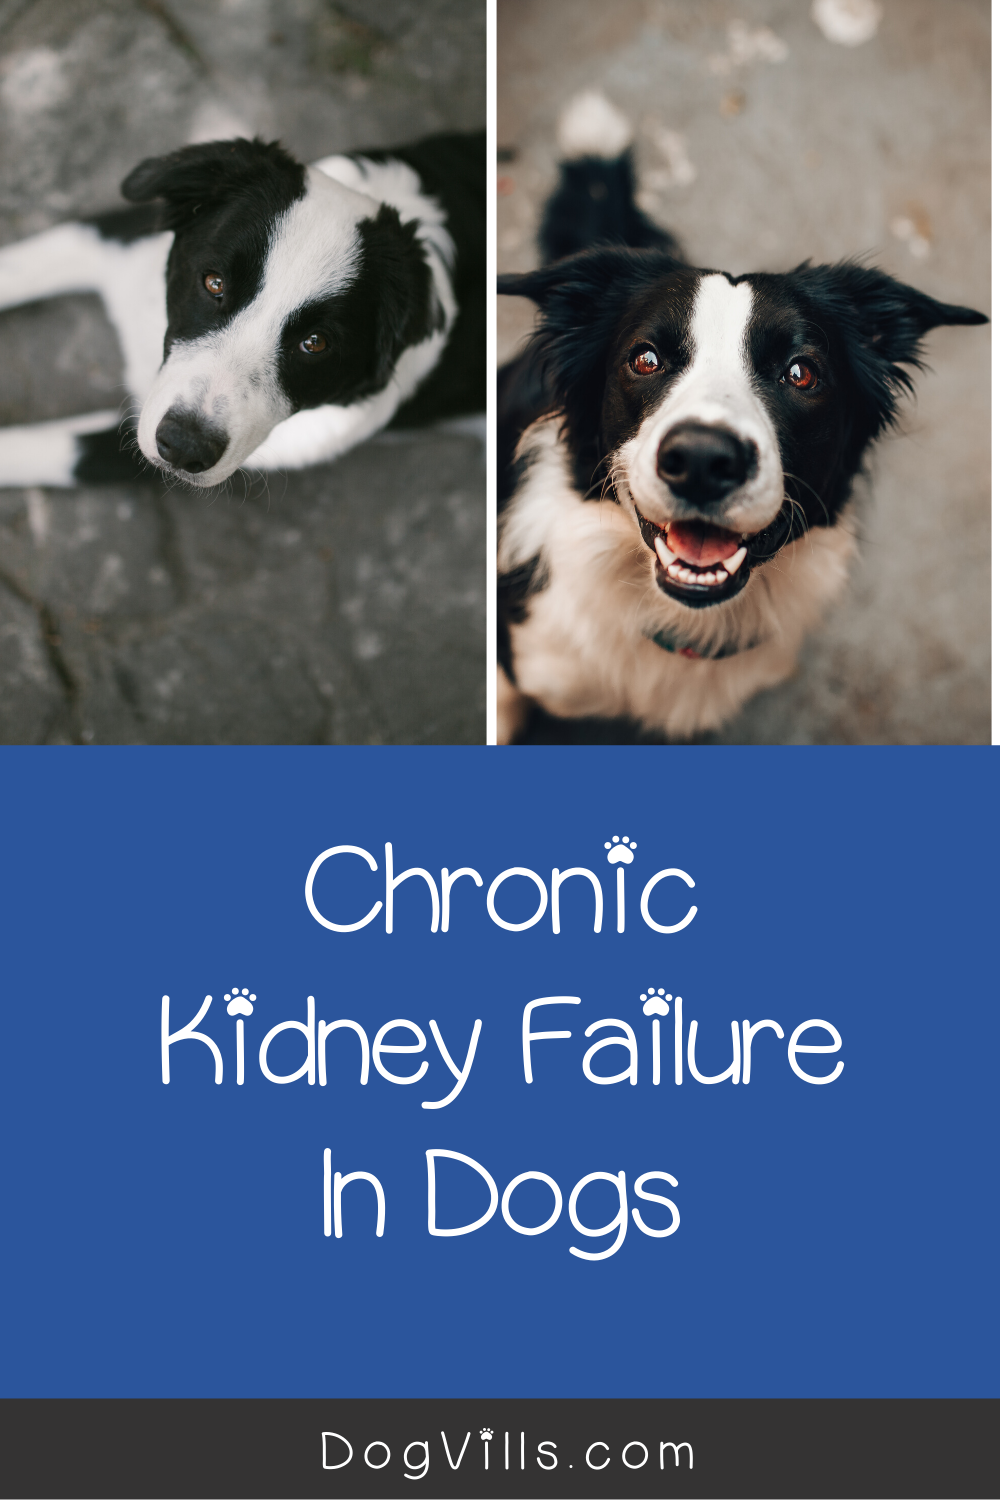 Dealing With Chronic Kidney Failure In Dogs How To Keep Them Comfortable Chronic Kidney Failure Dogs Dog Behavior Training